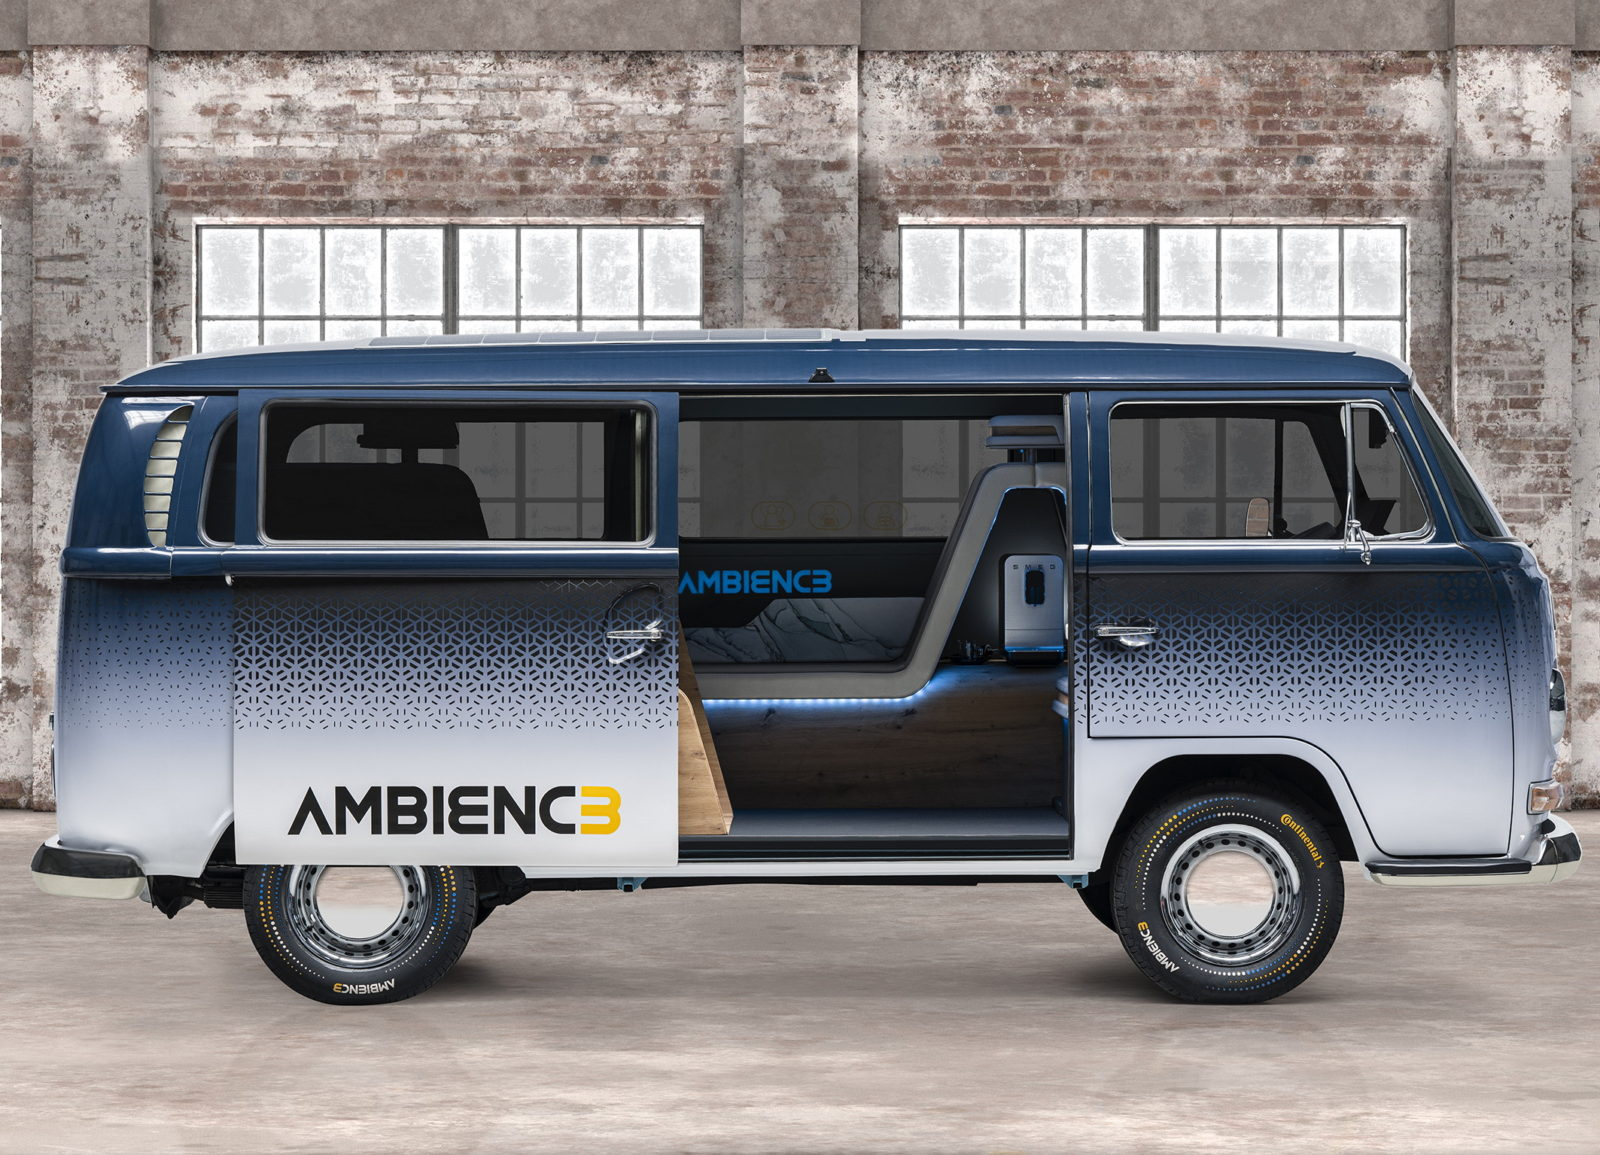 vw-t2-based-ambienc3-concept-car-by-continental-celebrates-world-premiere-at-the-iaa